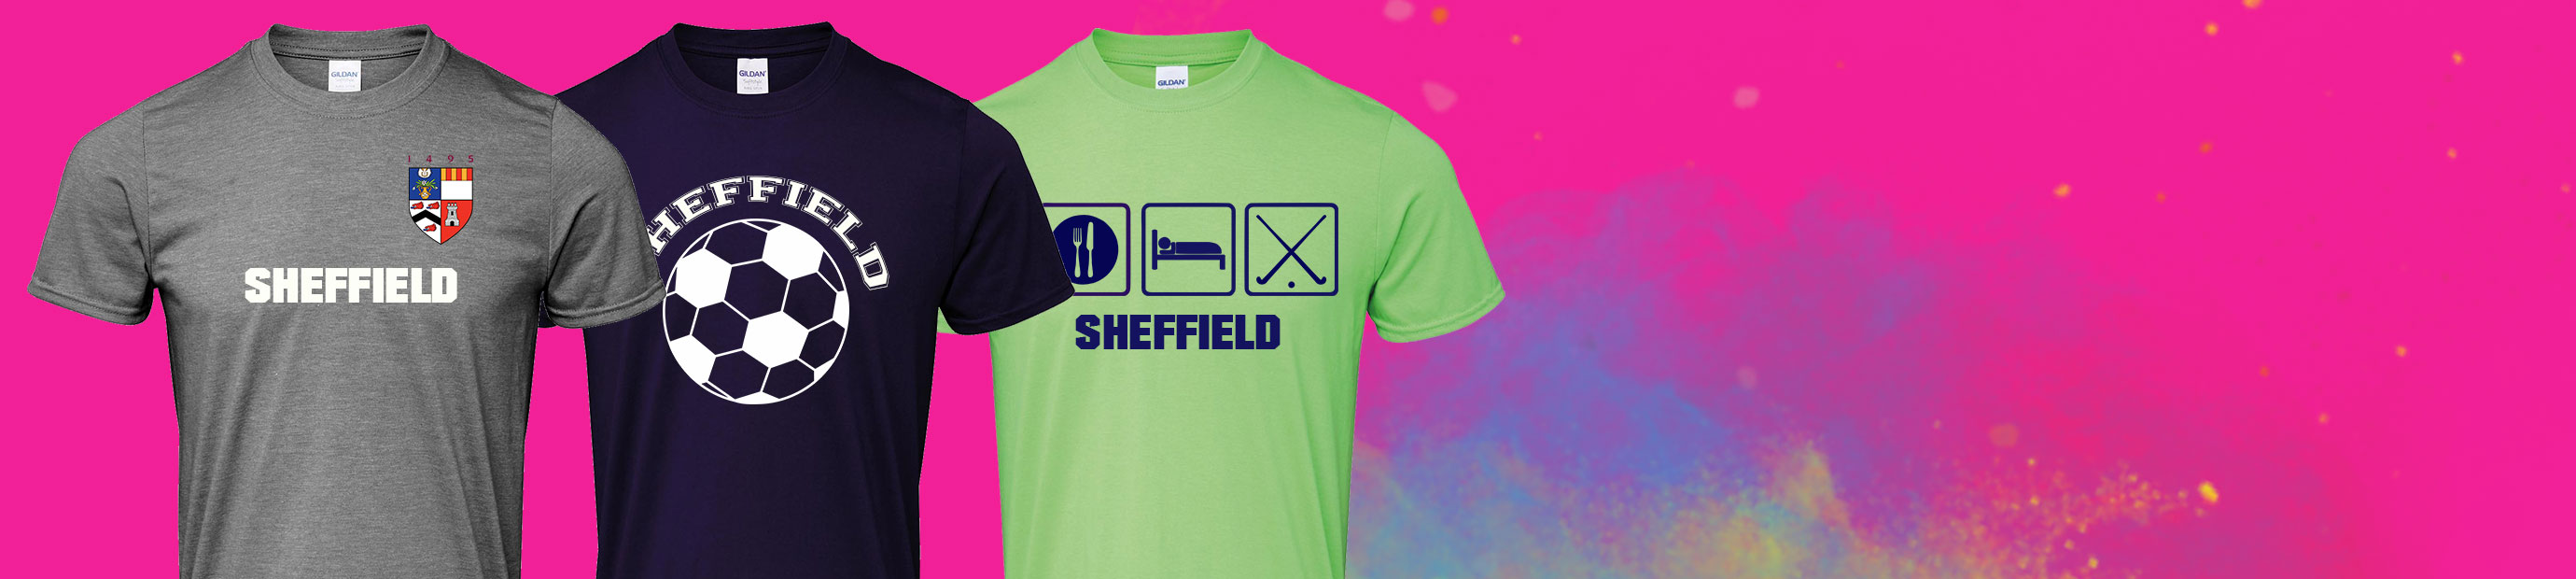 T-Shirt Printing in Sheffield